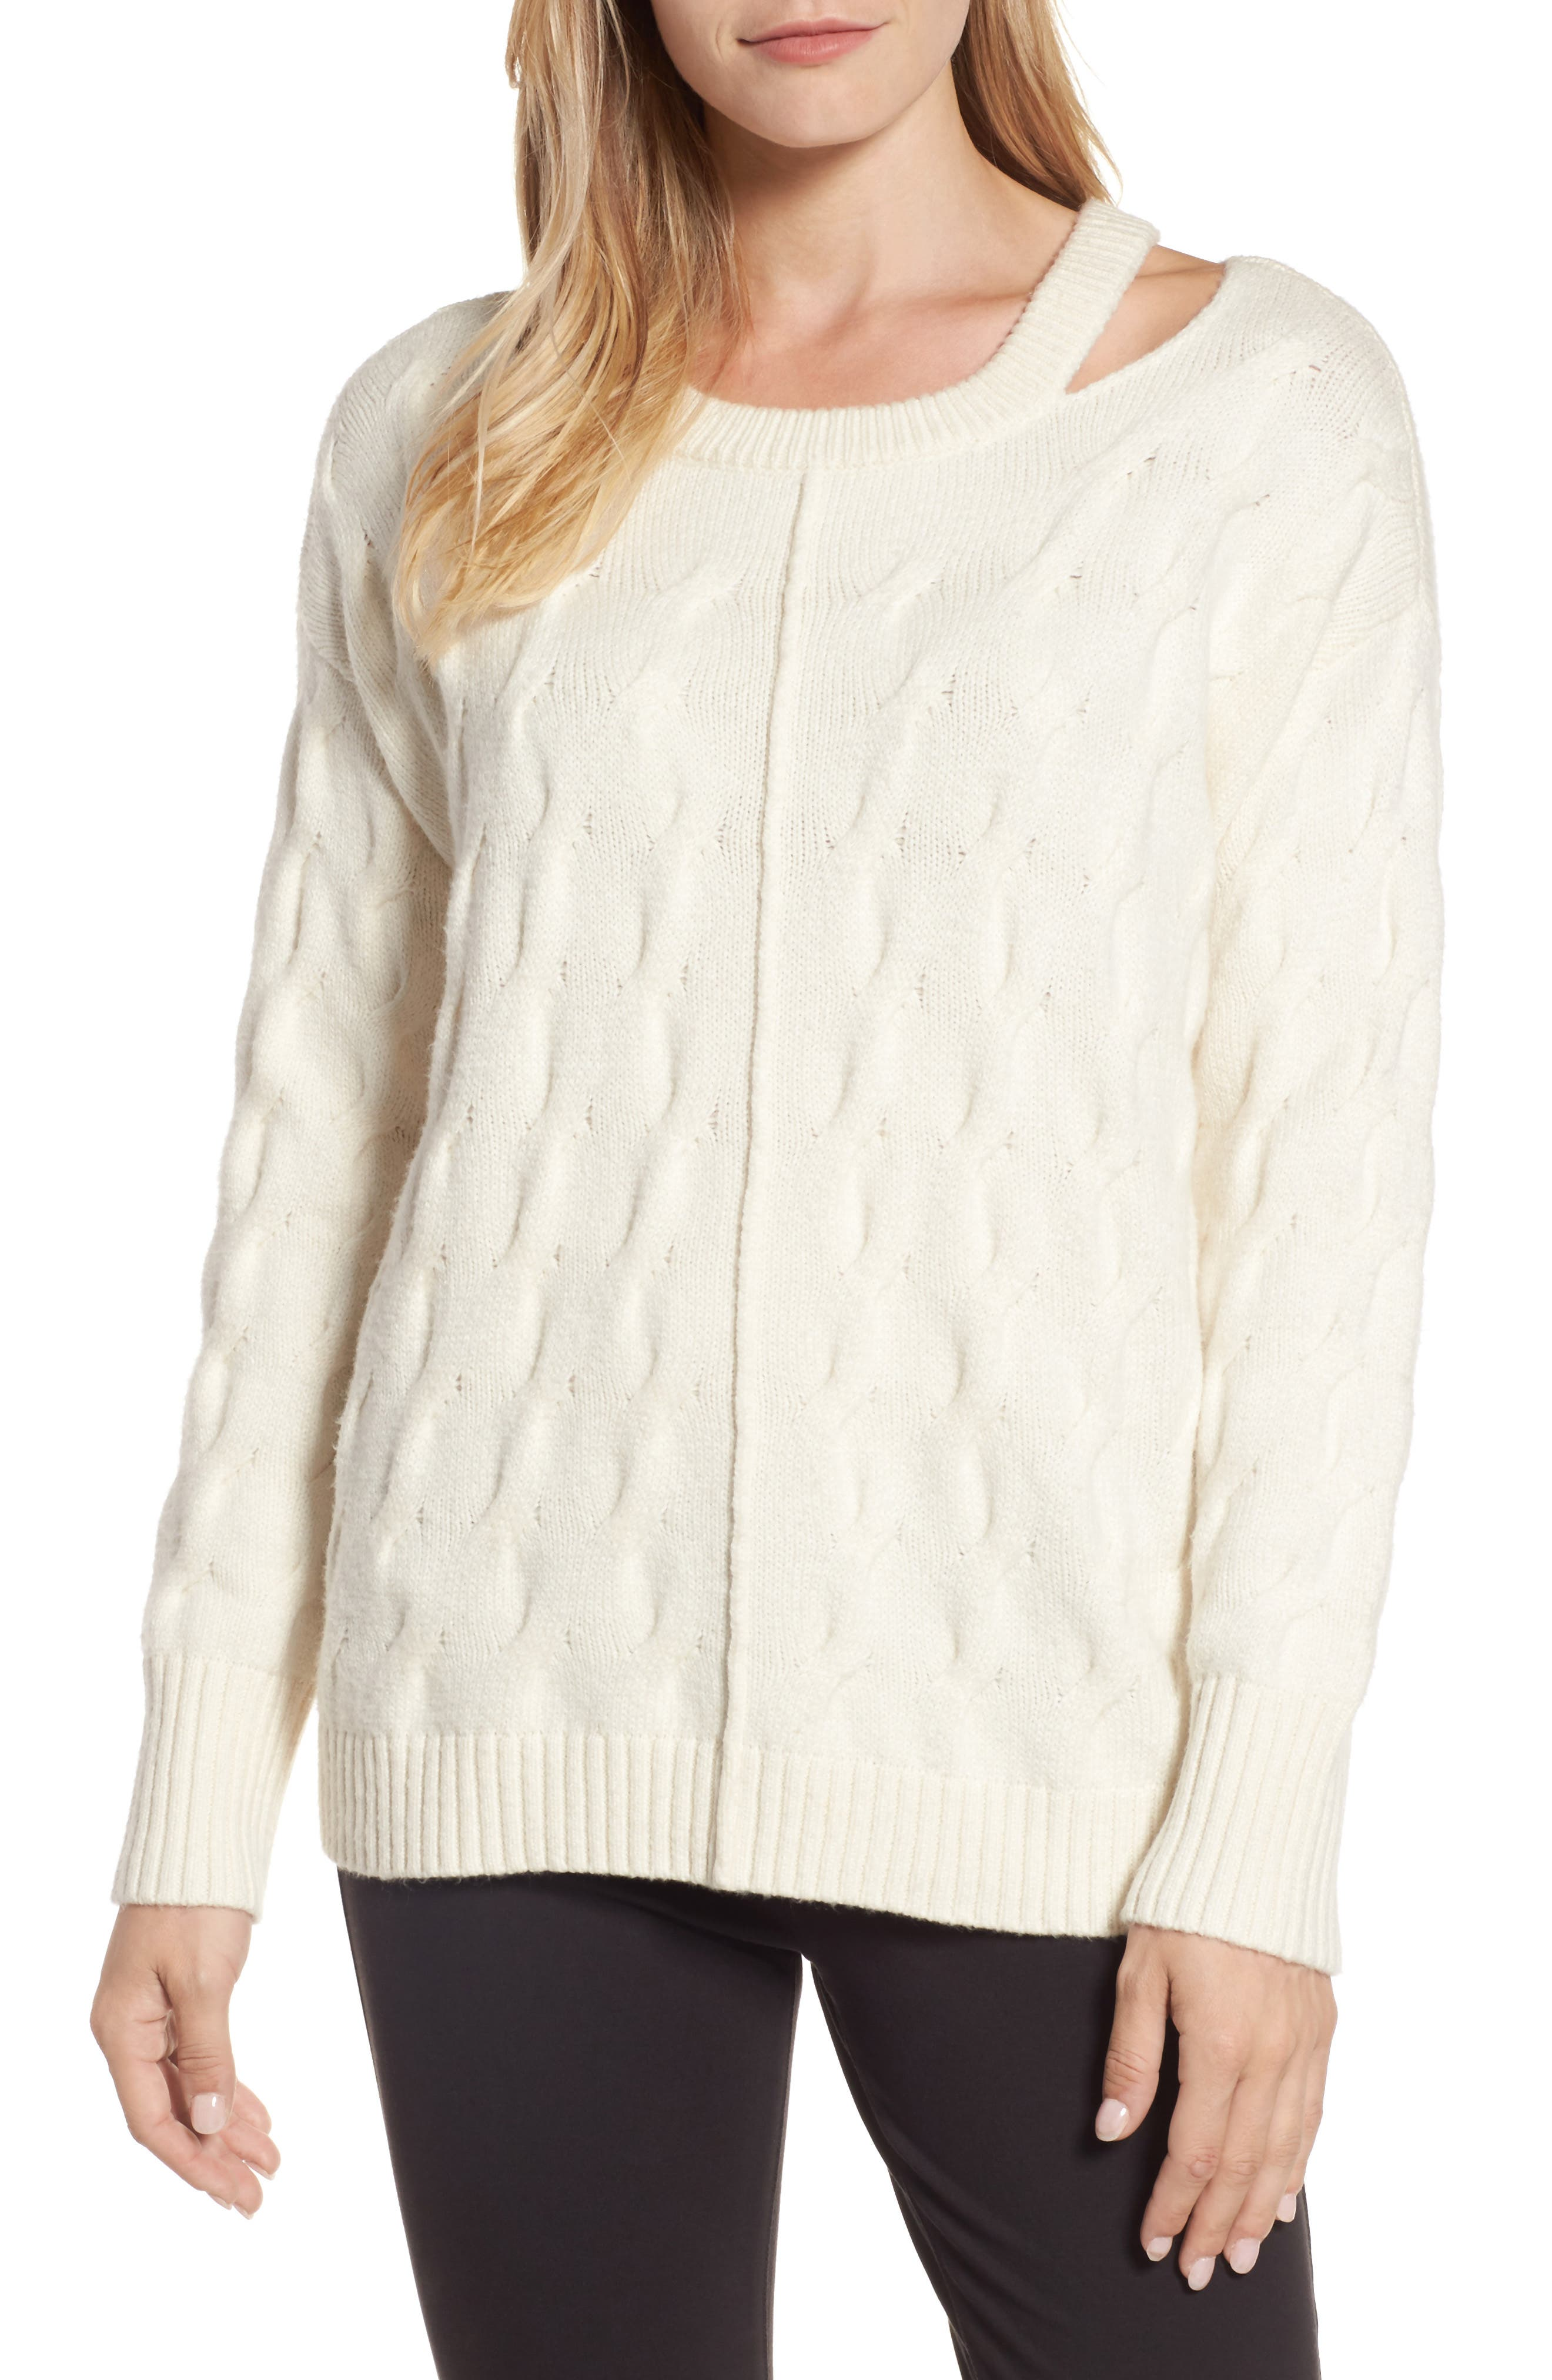 Main Image - Vince Camuto Keyhole Neck Cable Sweater (Regular & Petite)